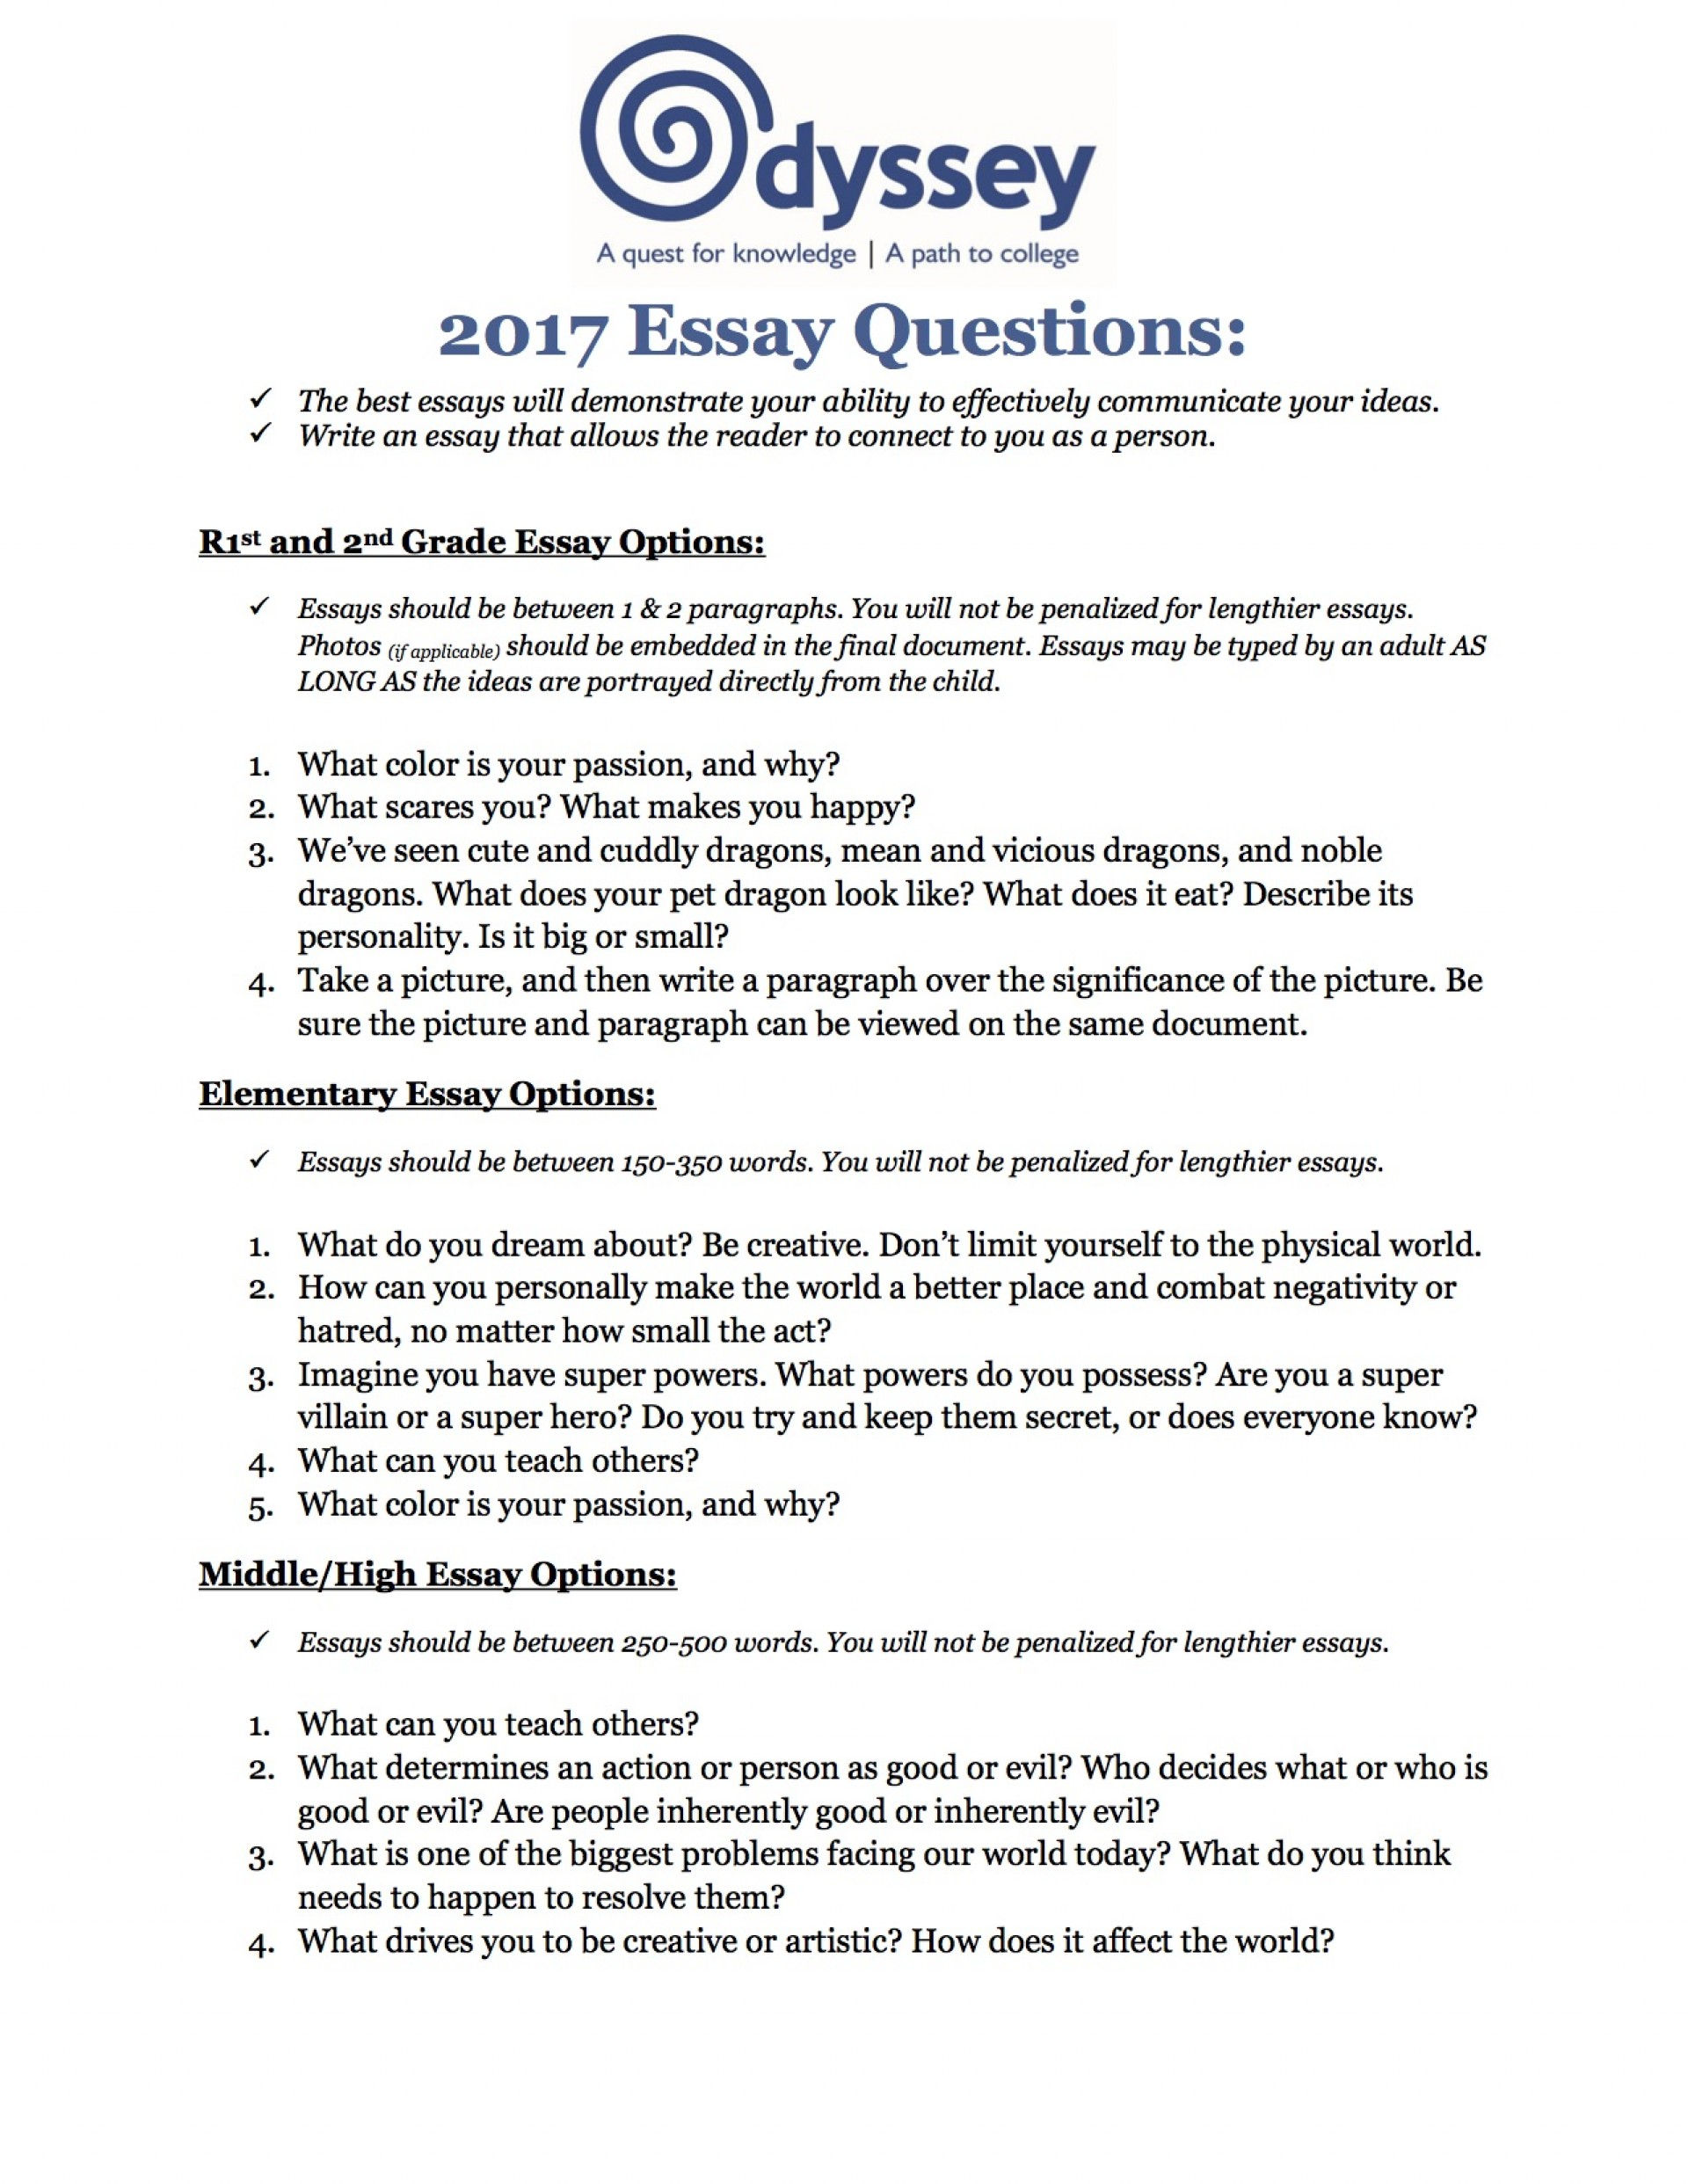 002 Odyssey Essay Topics 5829f1d2c75f9a7c5588b1c6 Proposed20essay20topics202017 Amazing Hero Prompt 1920